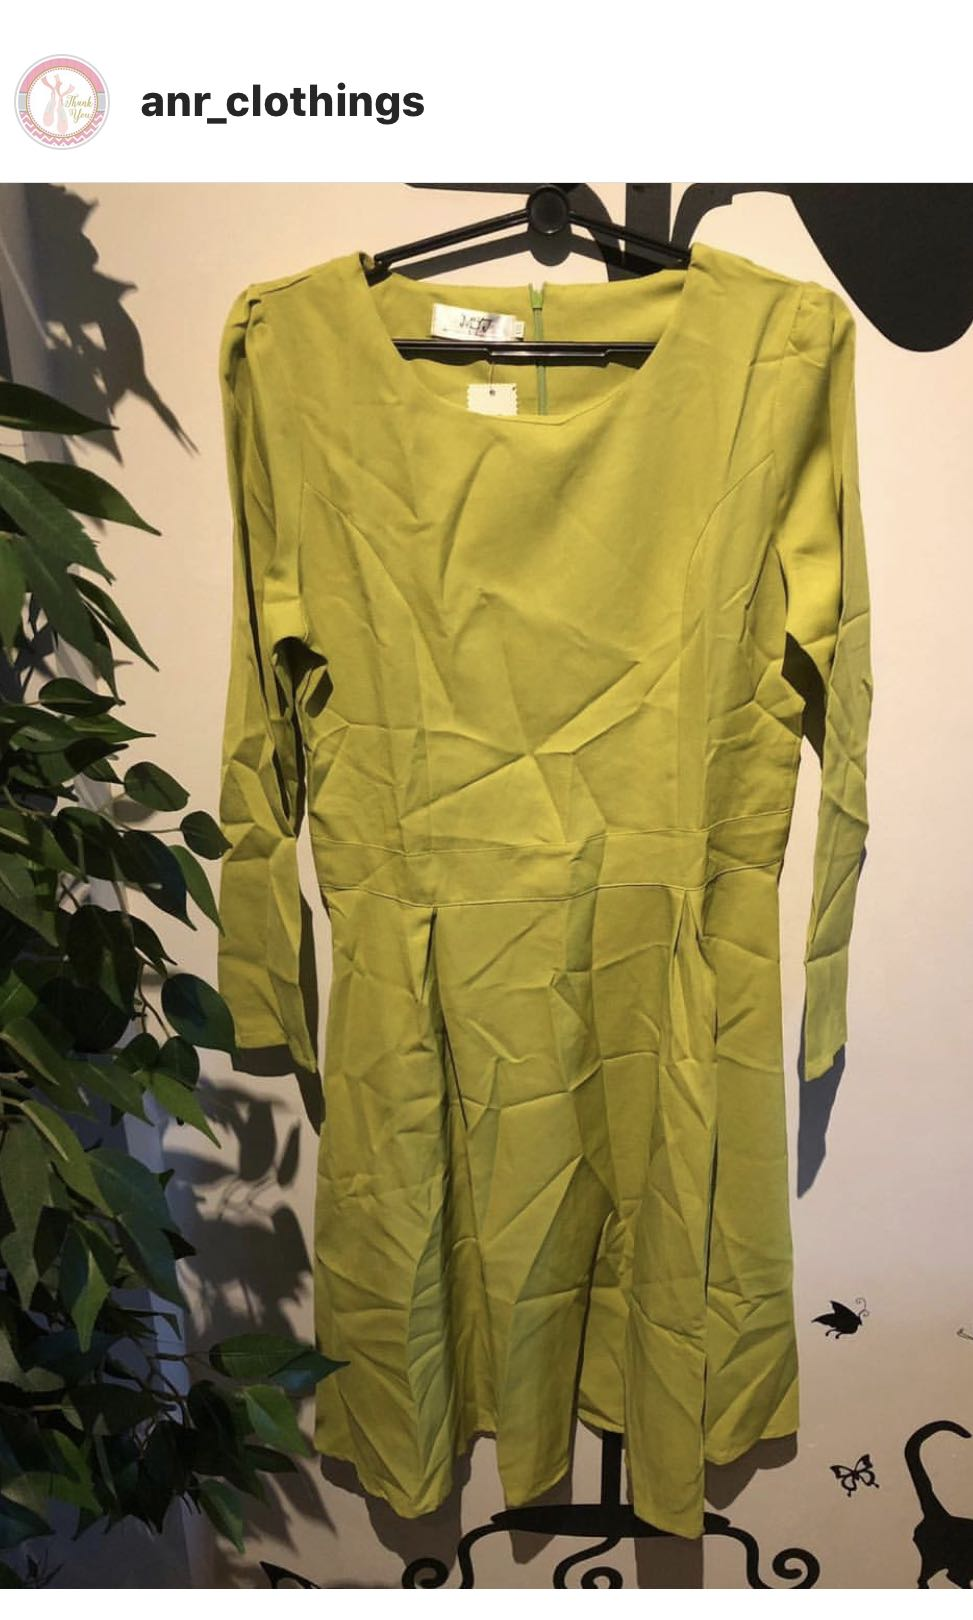 b69156a23a6a Brand New Lime Green Dress, Women's Fashion, Clothes, Dresses ...